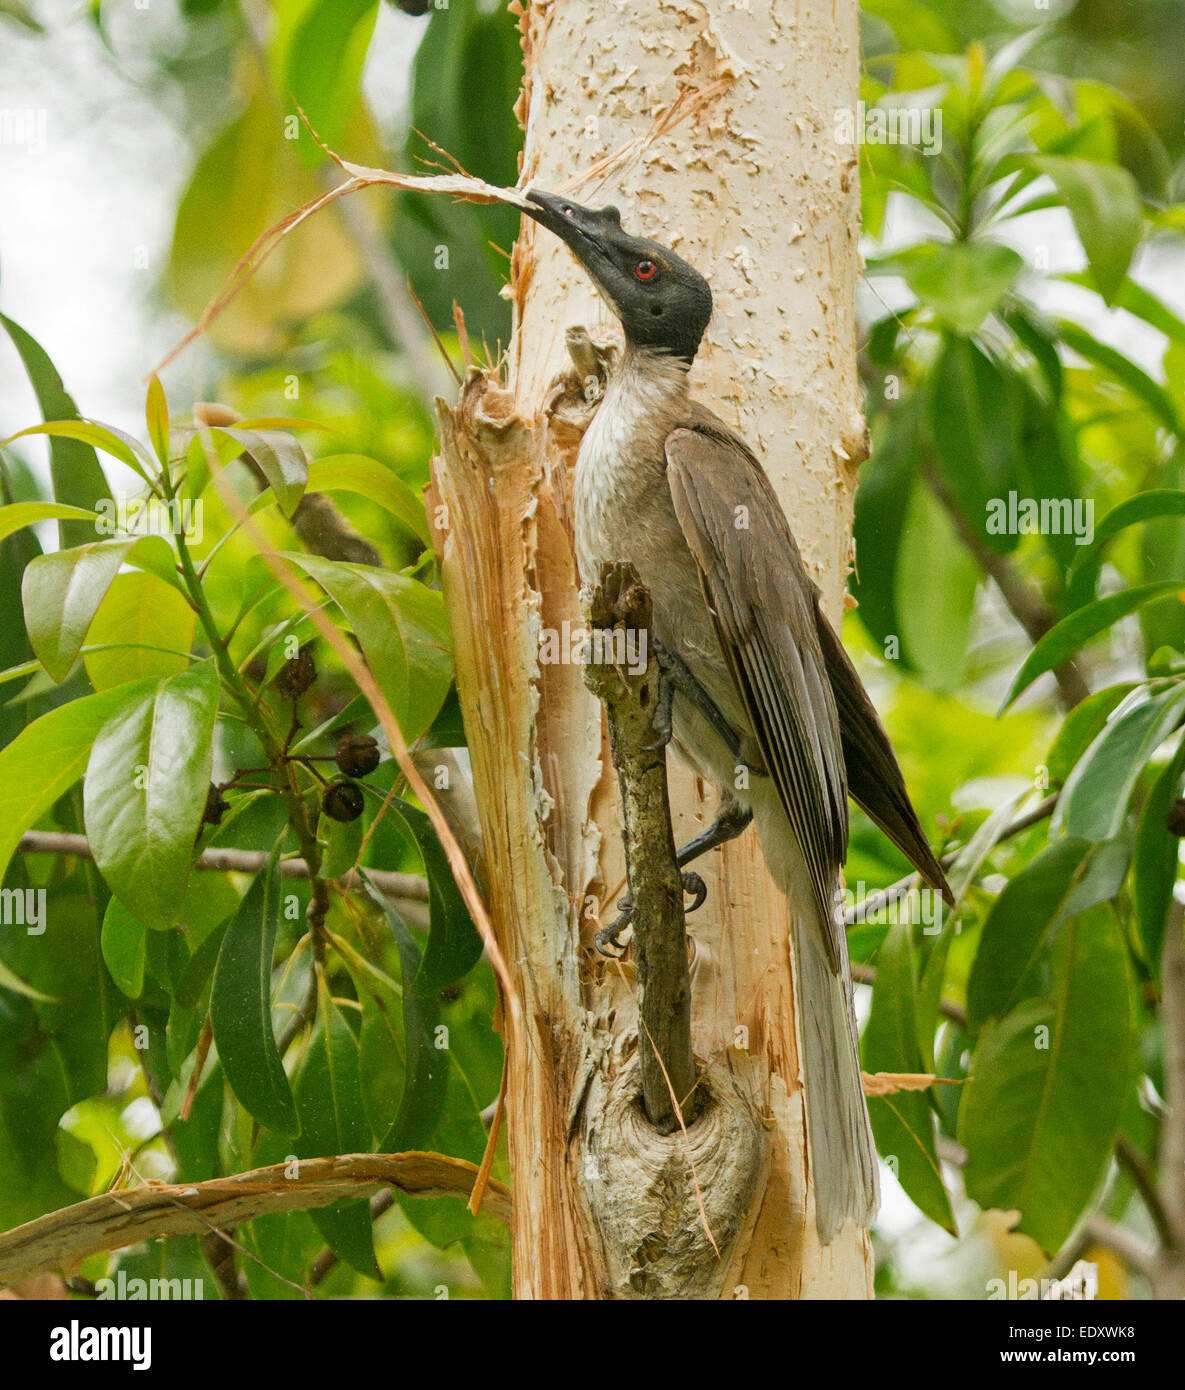 Australian noisy friar bird, Philemon corniculatus, with nesting material, a strip of bark from Melaleuca tree, - Stock Image